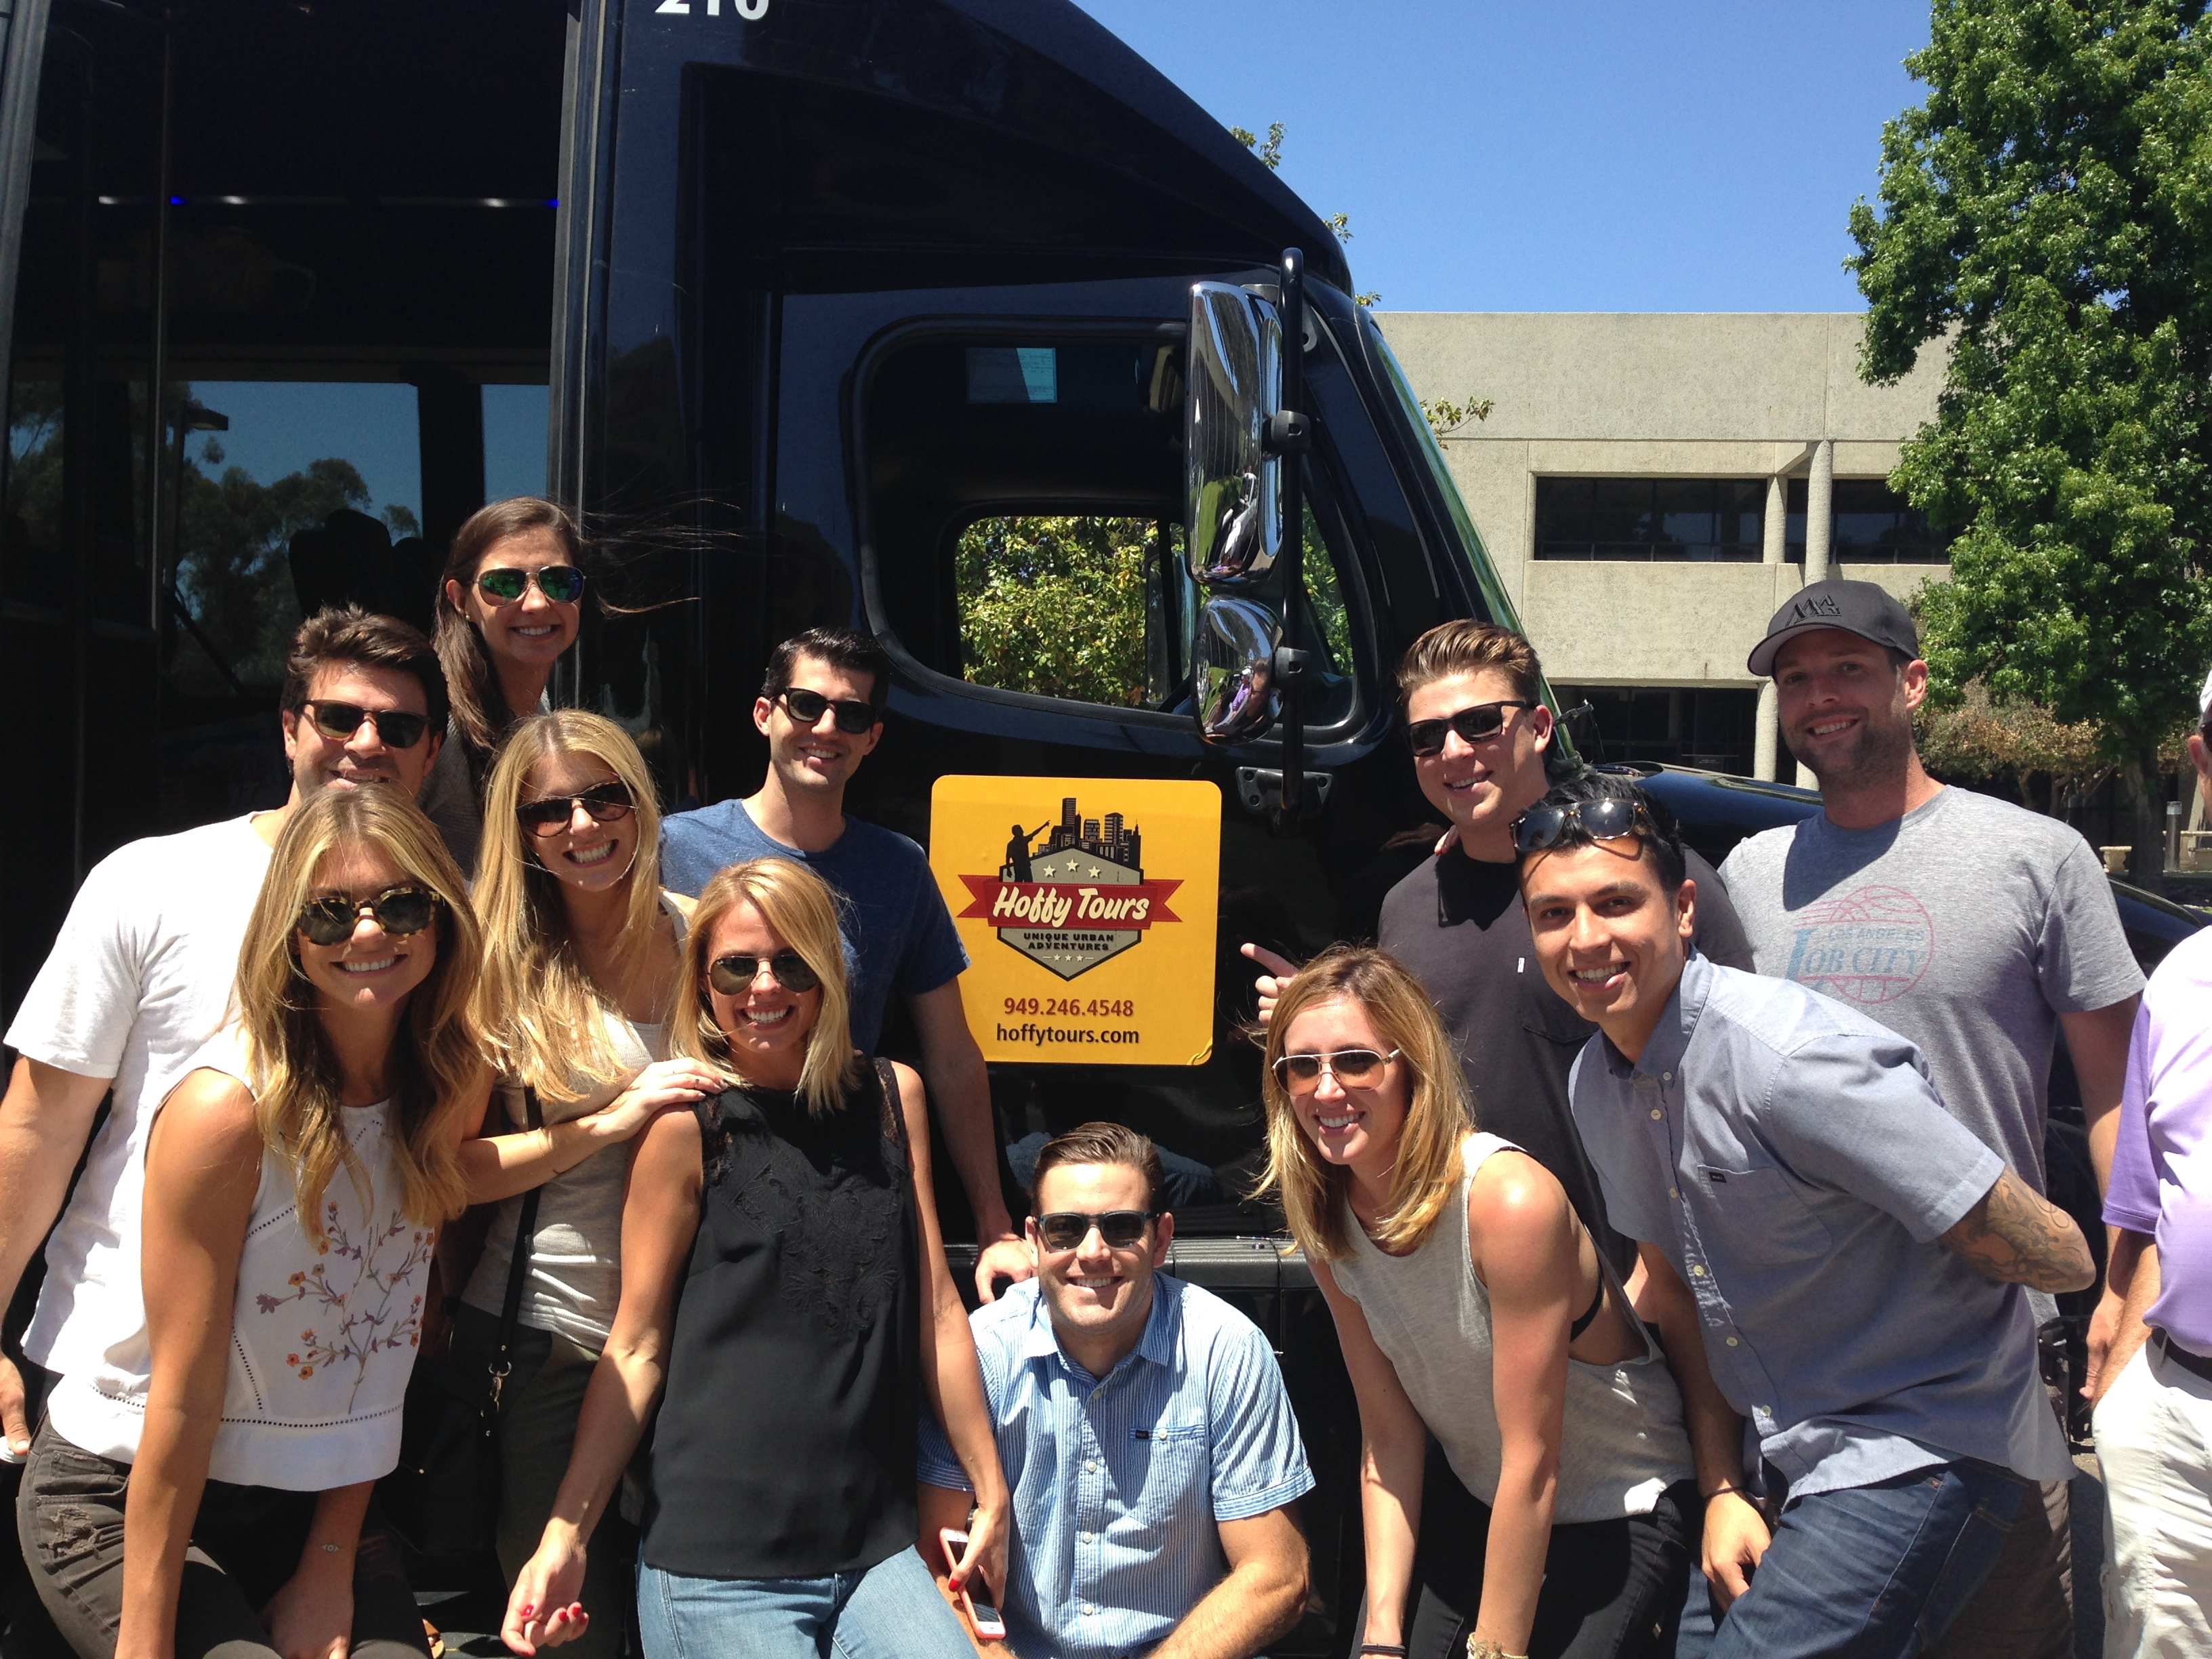 Hollywood celebrity bus tours